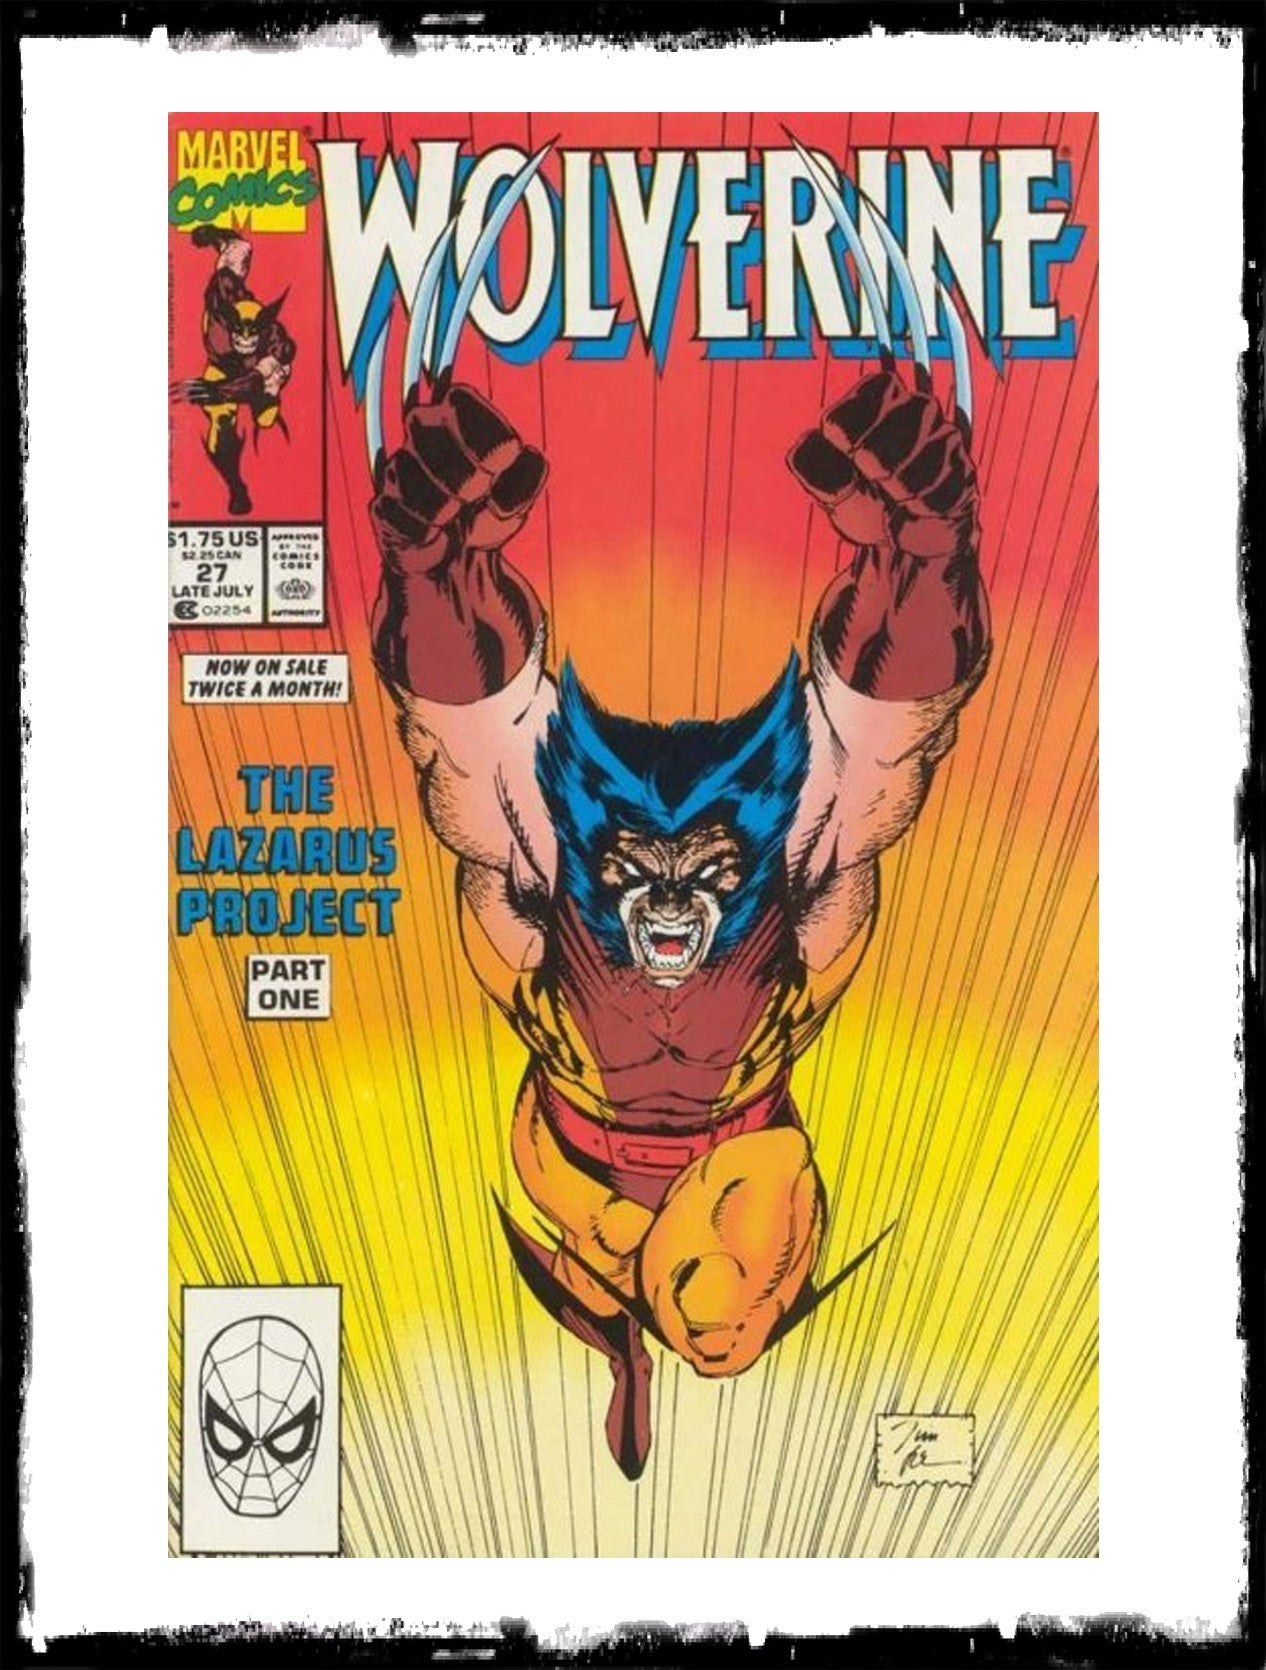 WOLVERINE - #27 JIM LEE CLASSIC COVER! (1990 - VF+/NM)